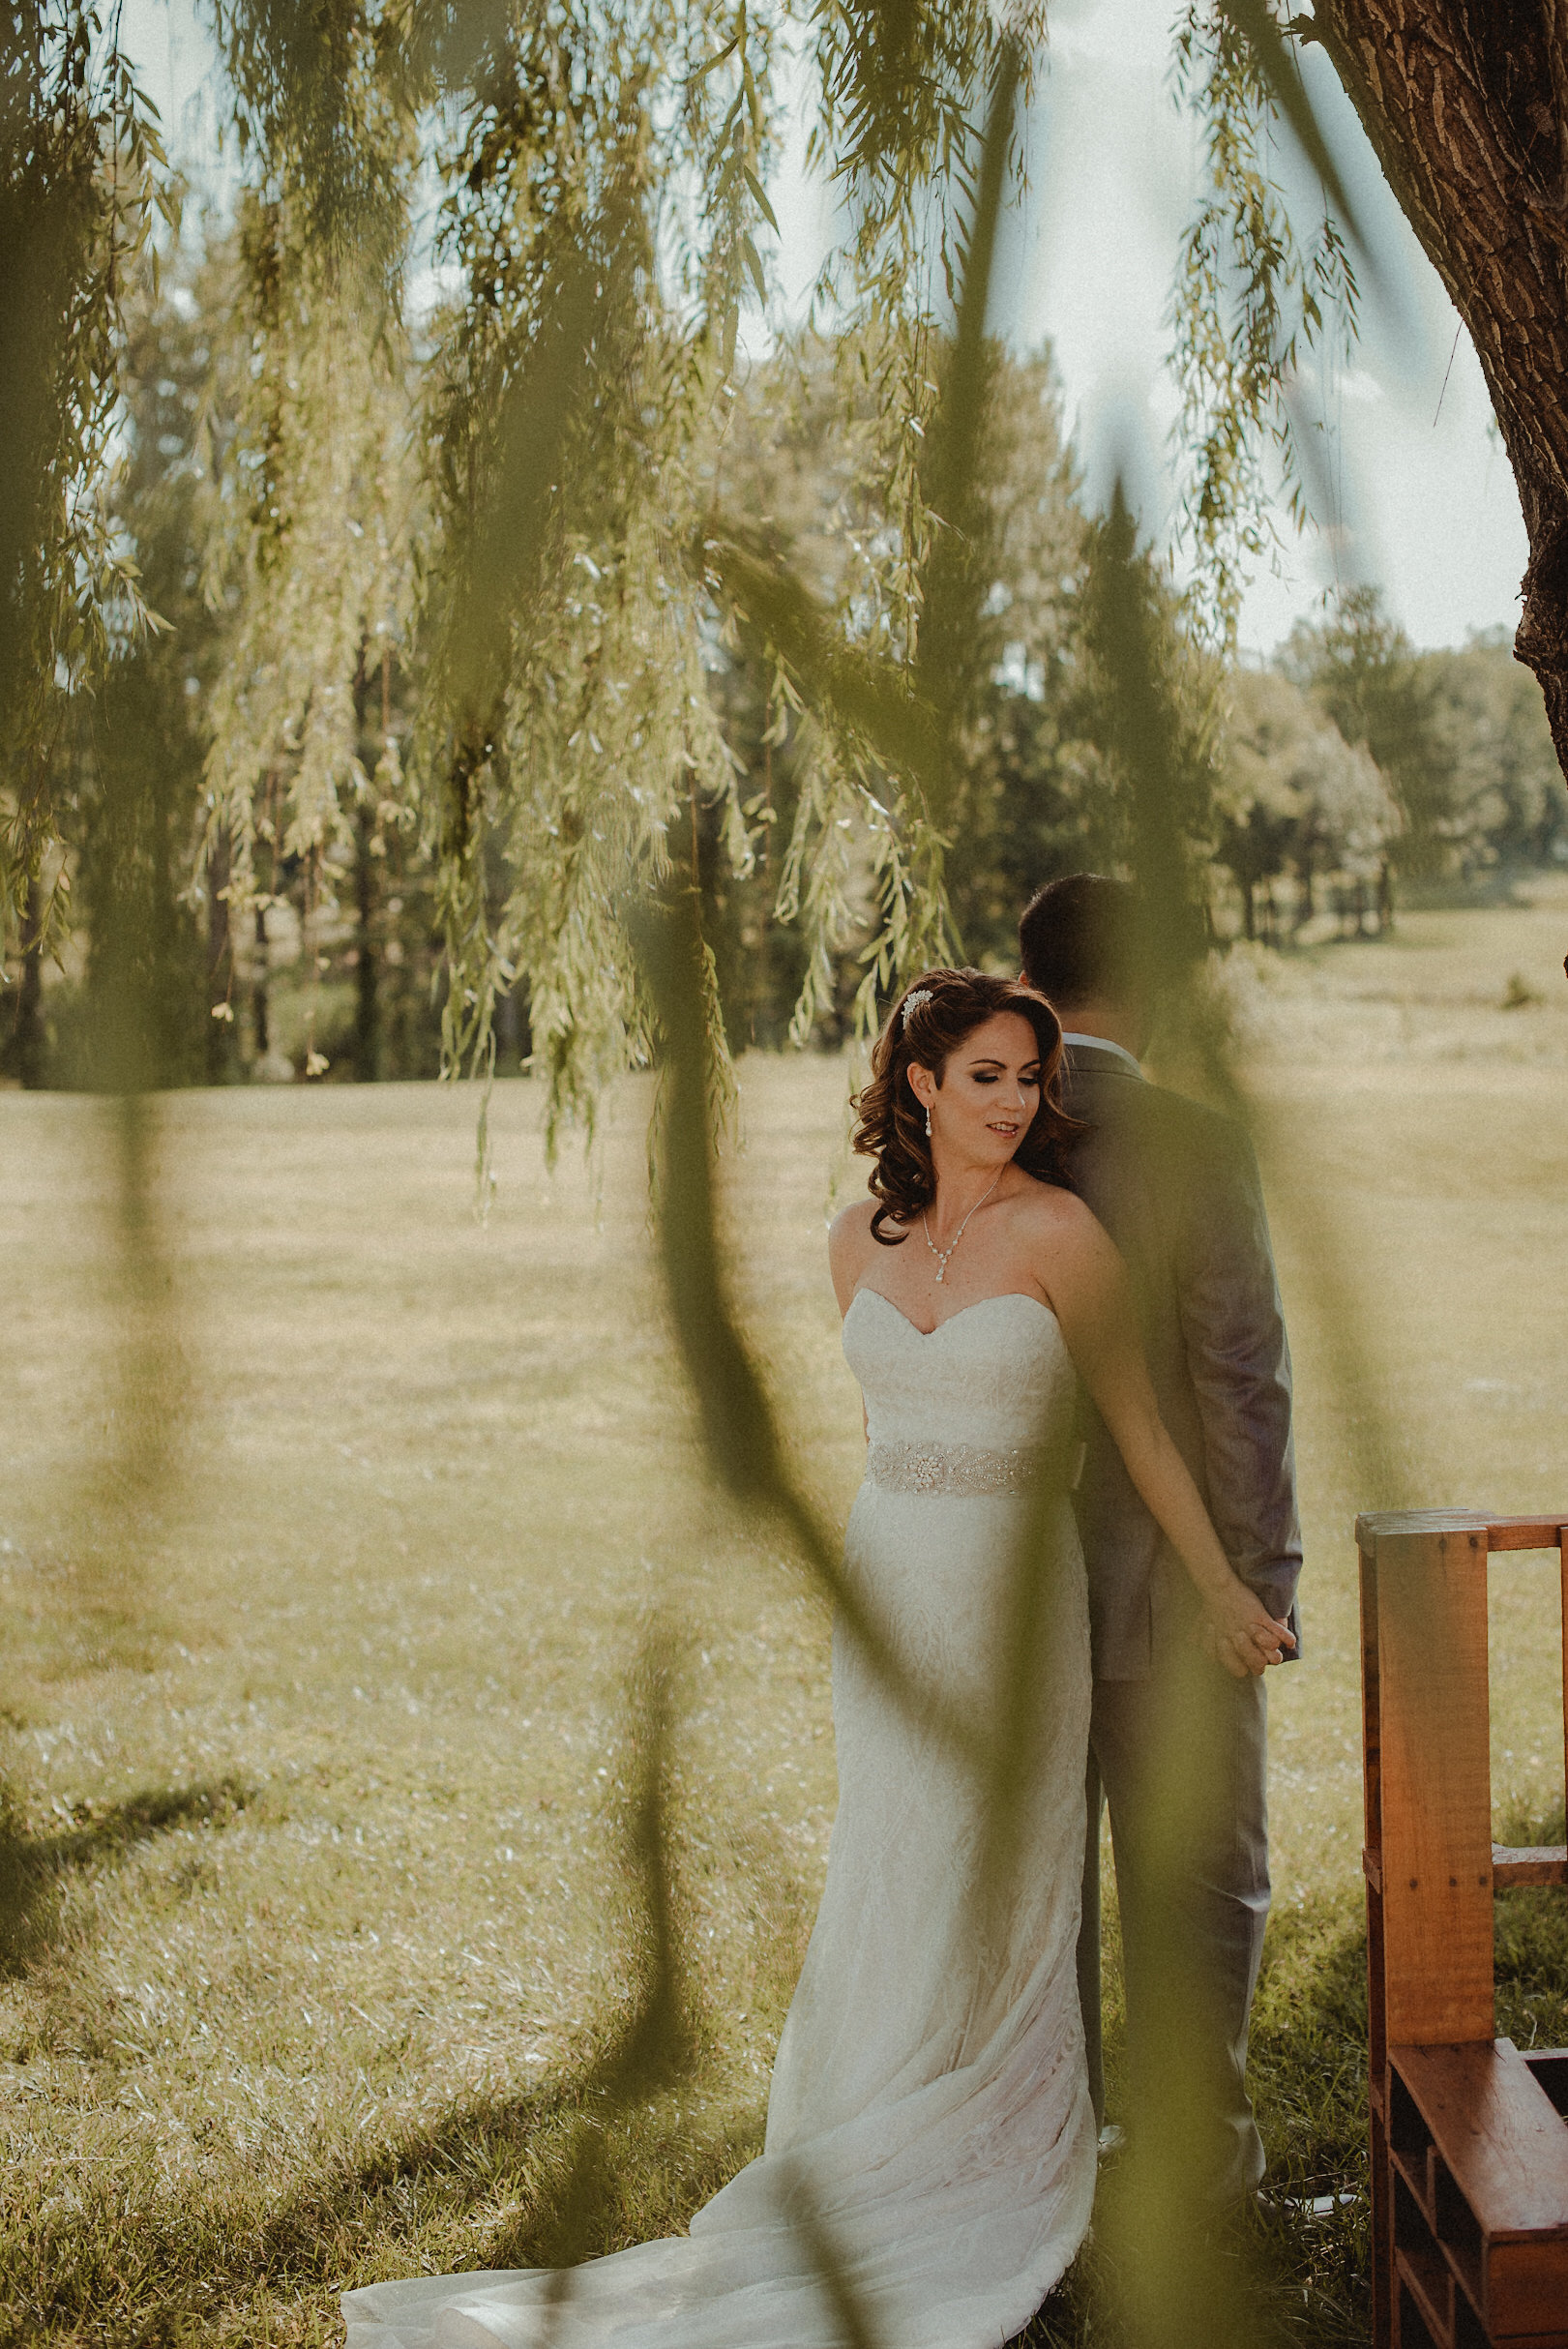 Bride and groom seen through a willow tree